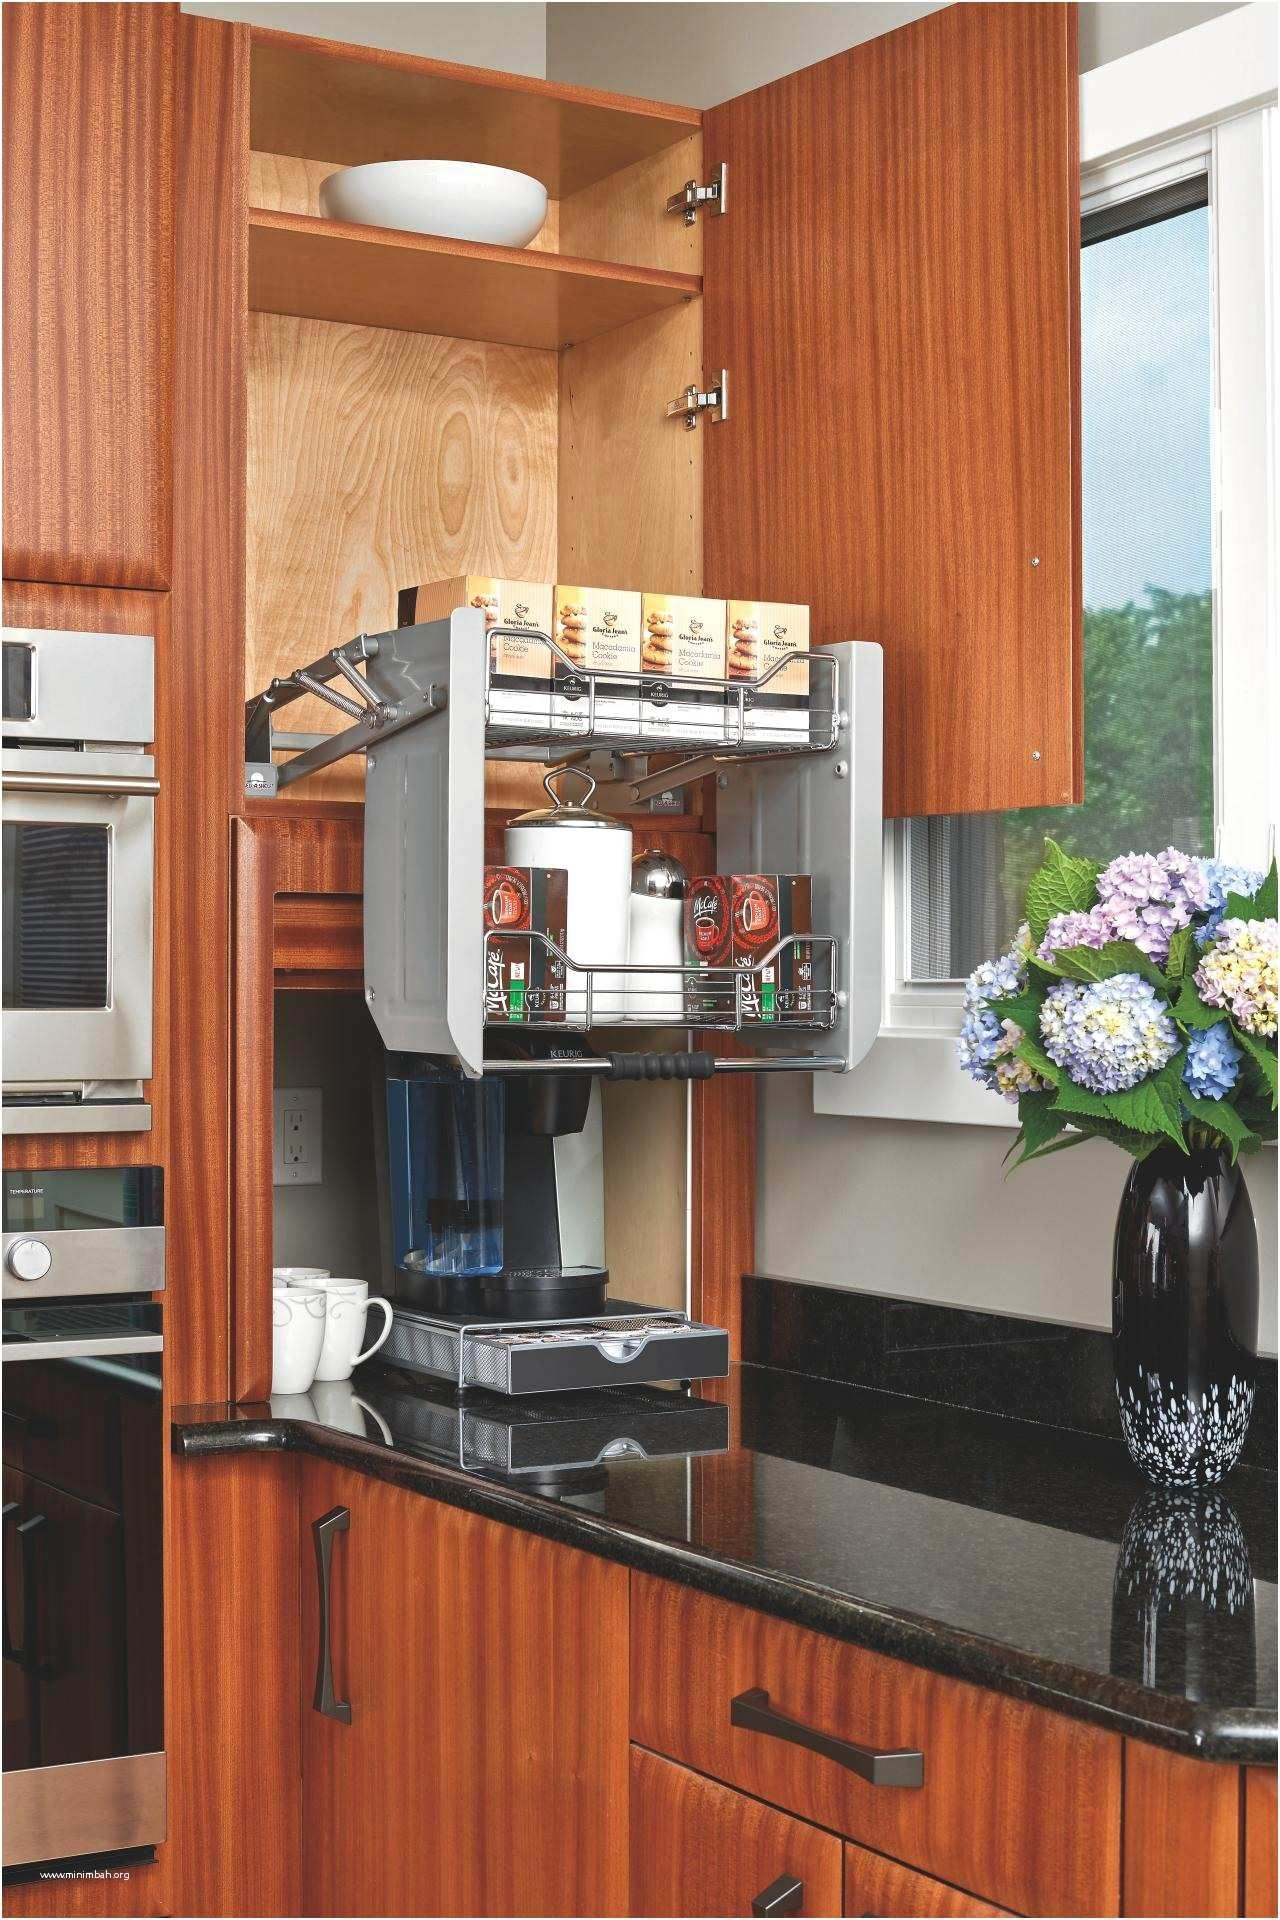 aging in place how to make your home senior friendly clever kitchen storage kitchen trends on kitchen organization layout id=74152